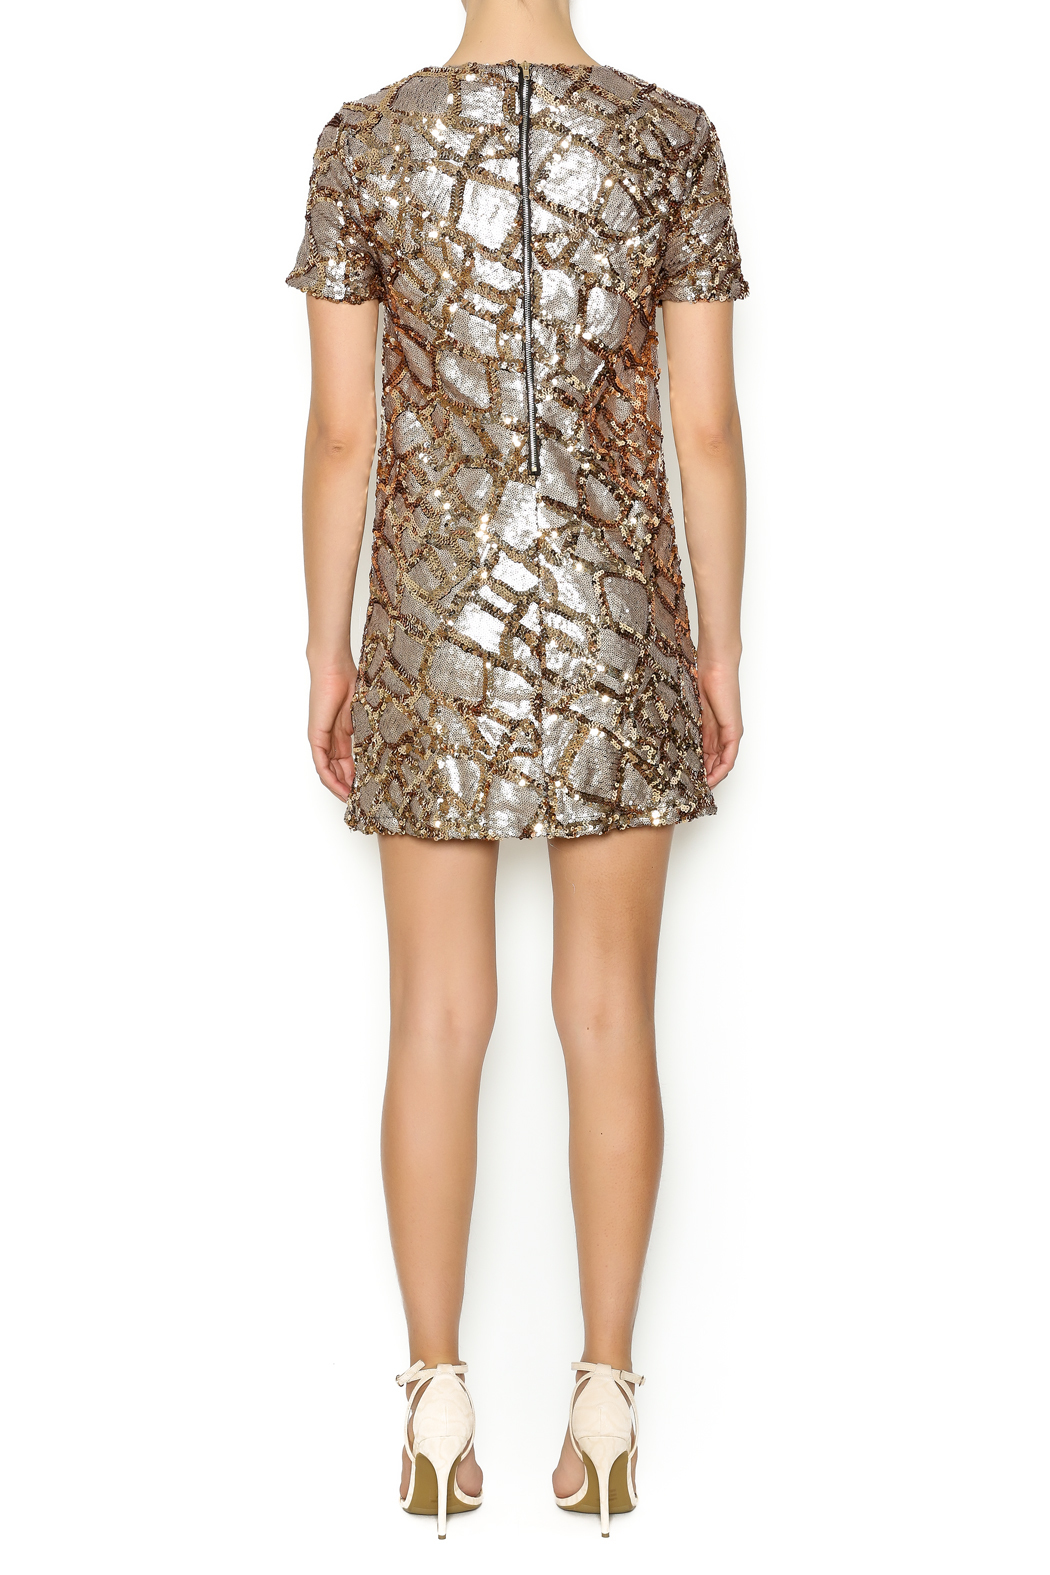 ENTRY Gold Sequin Dress - Side Cropped Image